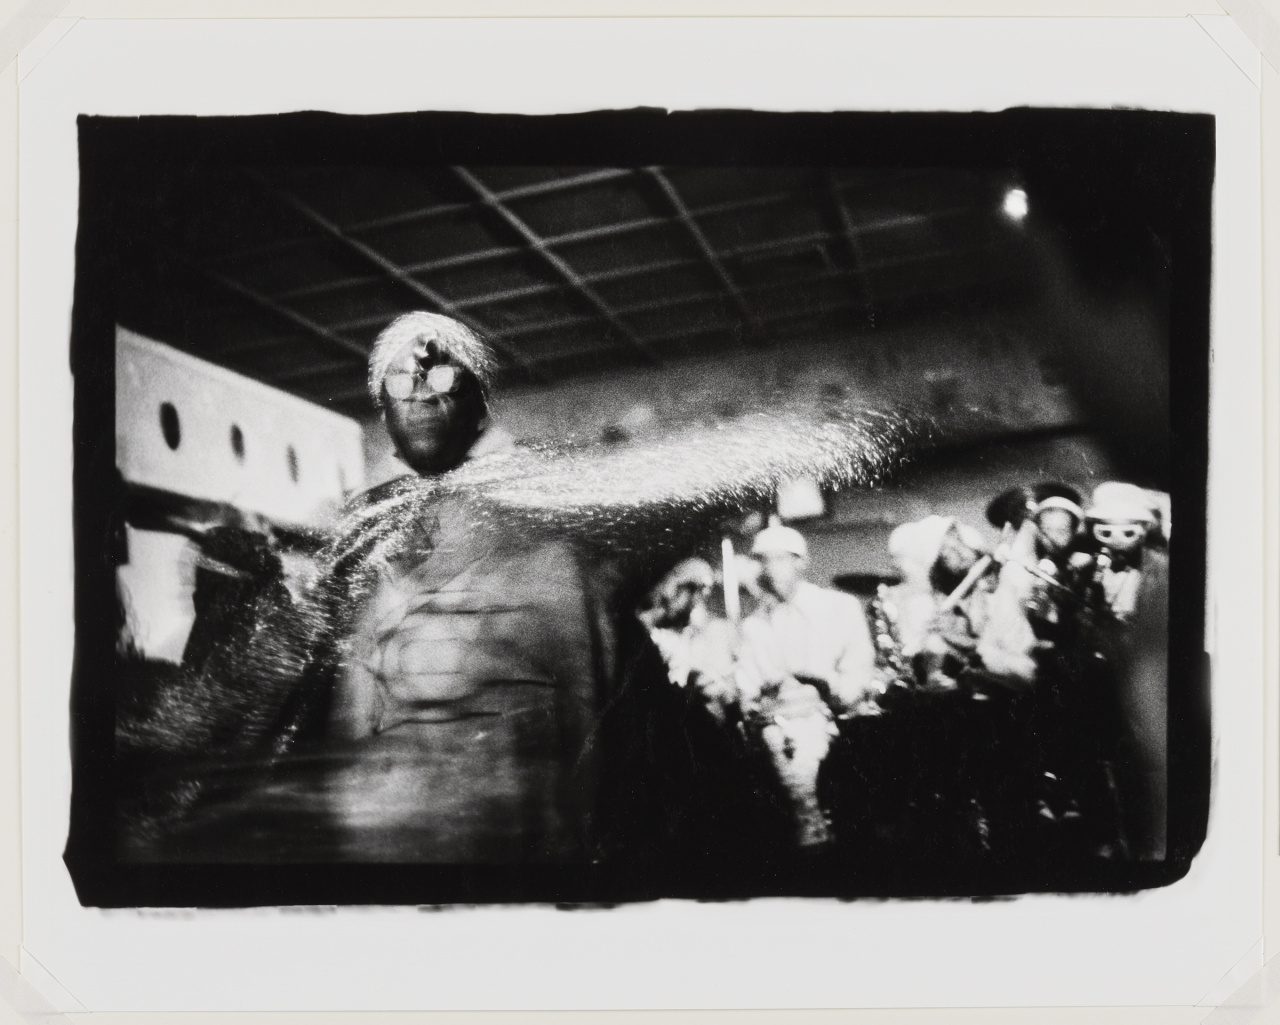 Ming Smith, Sun Ra space II, New York, NY, 1978;  Gelatin silver print, printed 2017.  40.6 × 50.8 cm. Purchase, with funds generously donated by Cindy & Shon Barnett, 2018. © Ming Smith 2018/35